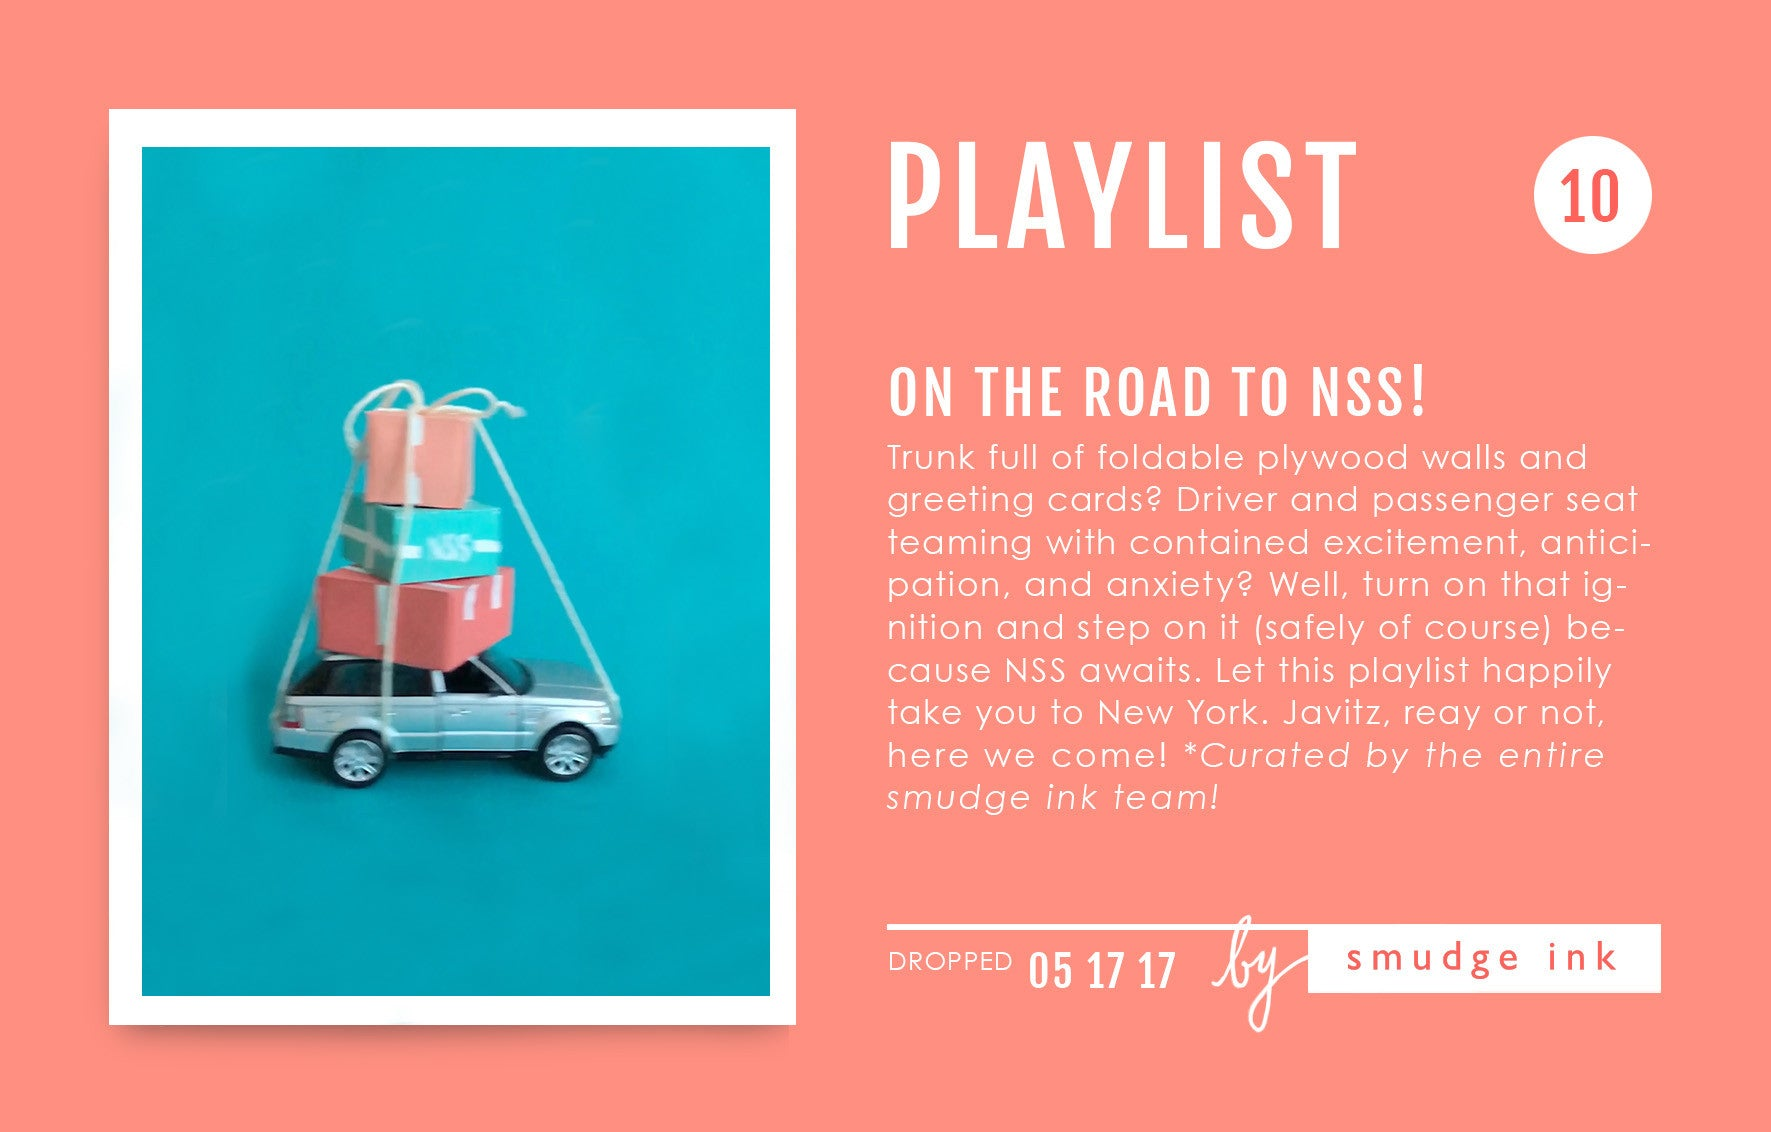 Playlist: On the Road to NSS! | Smudge Ink